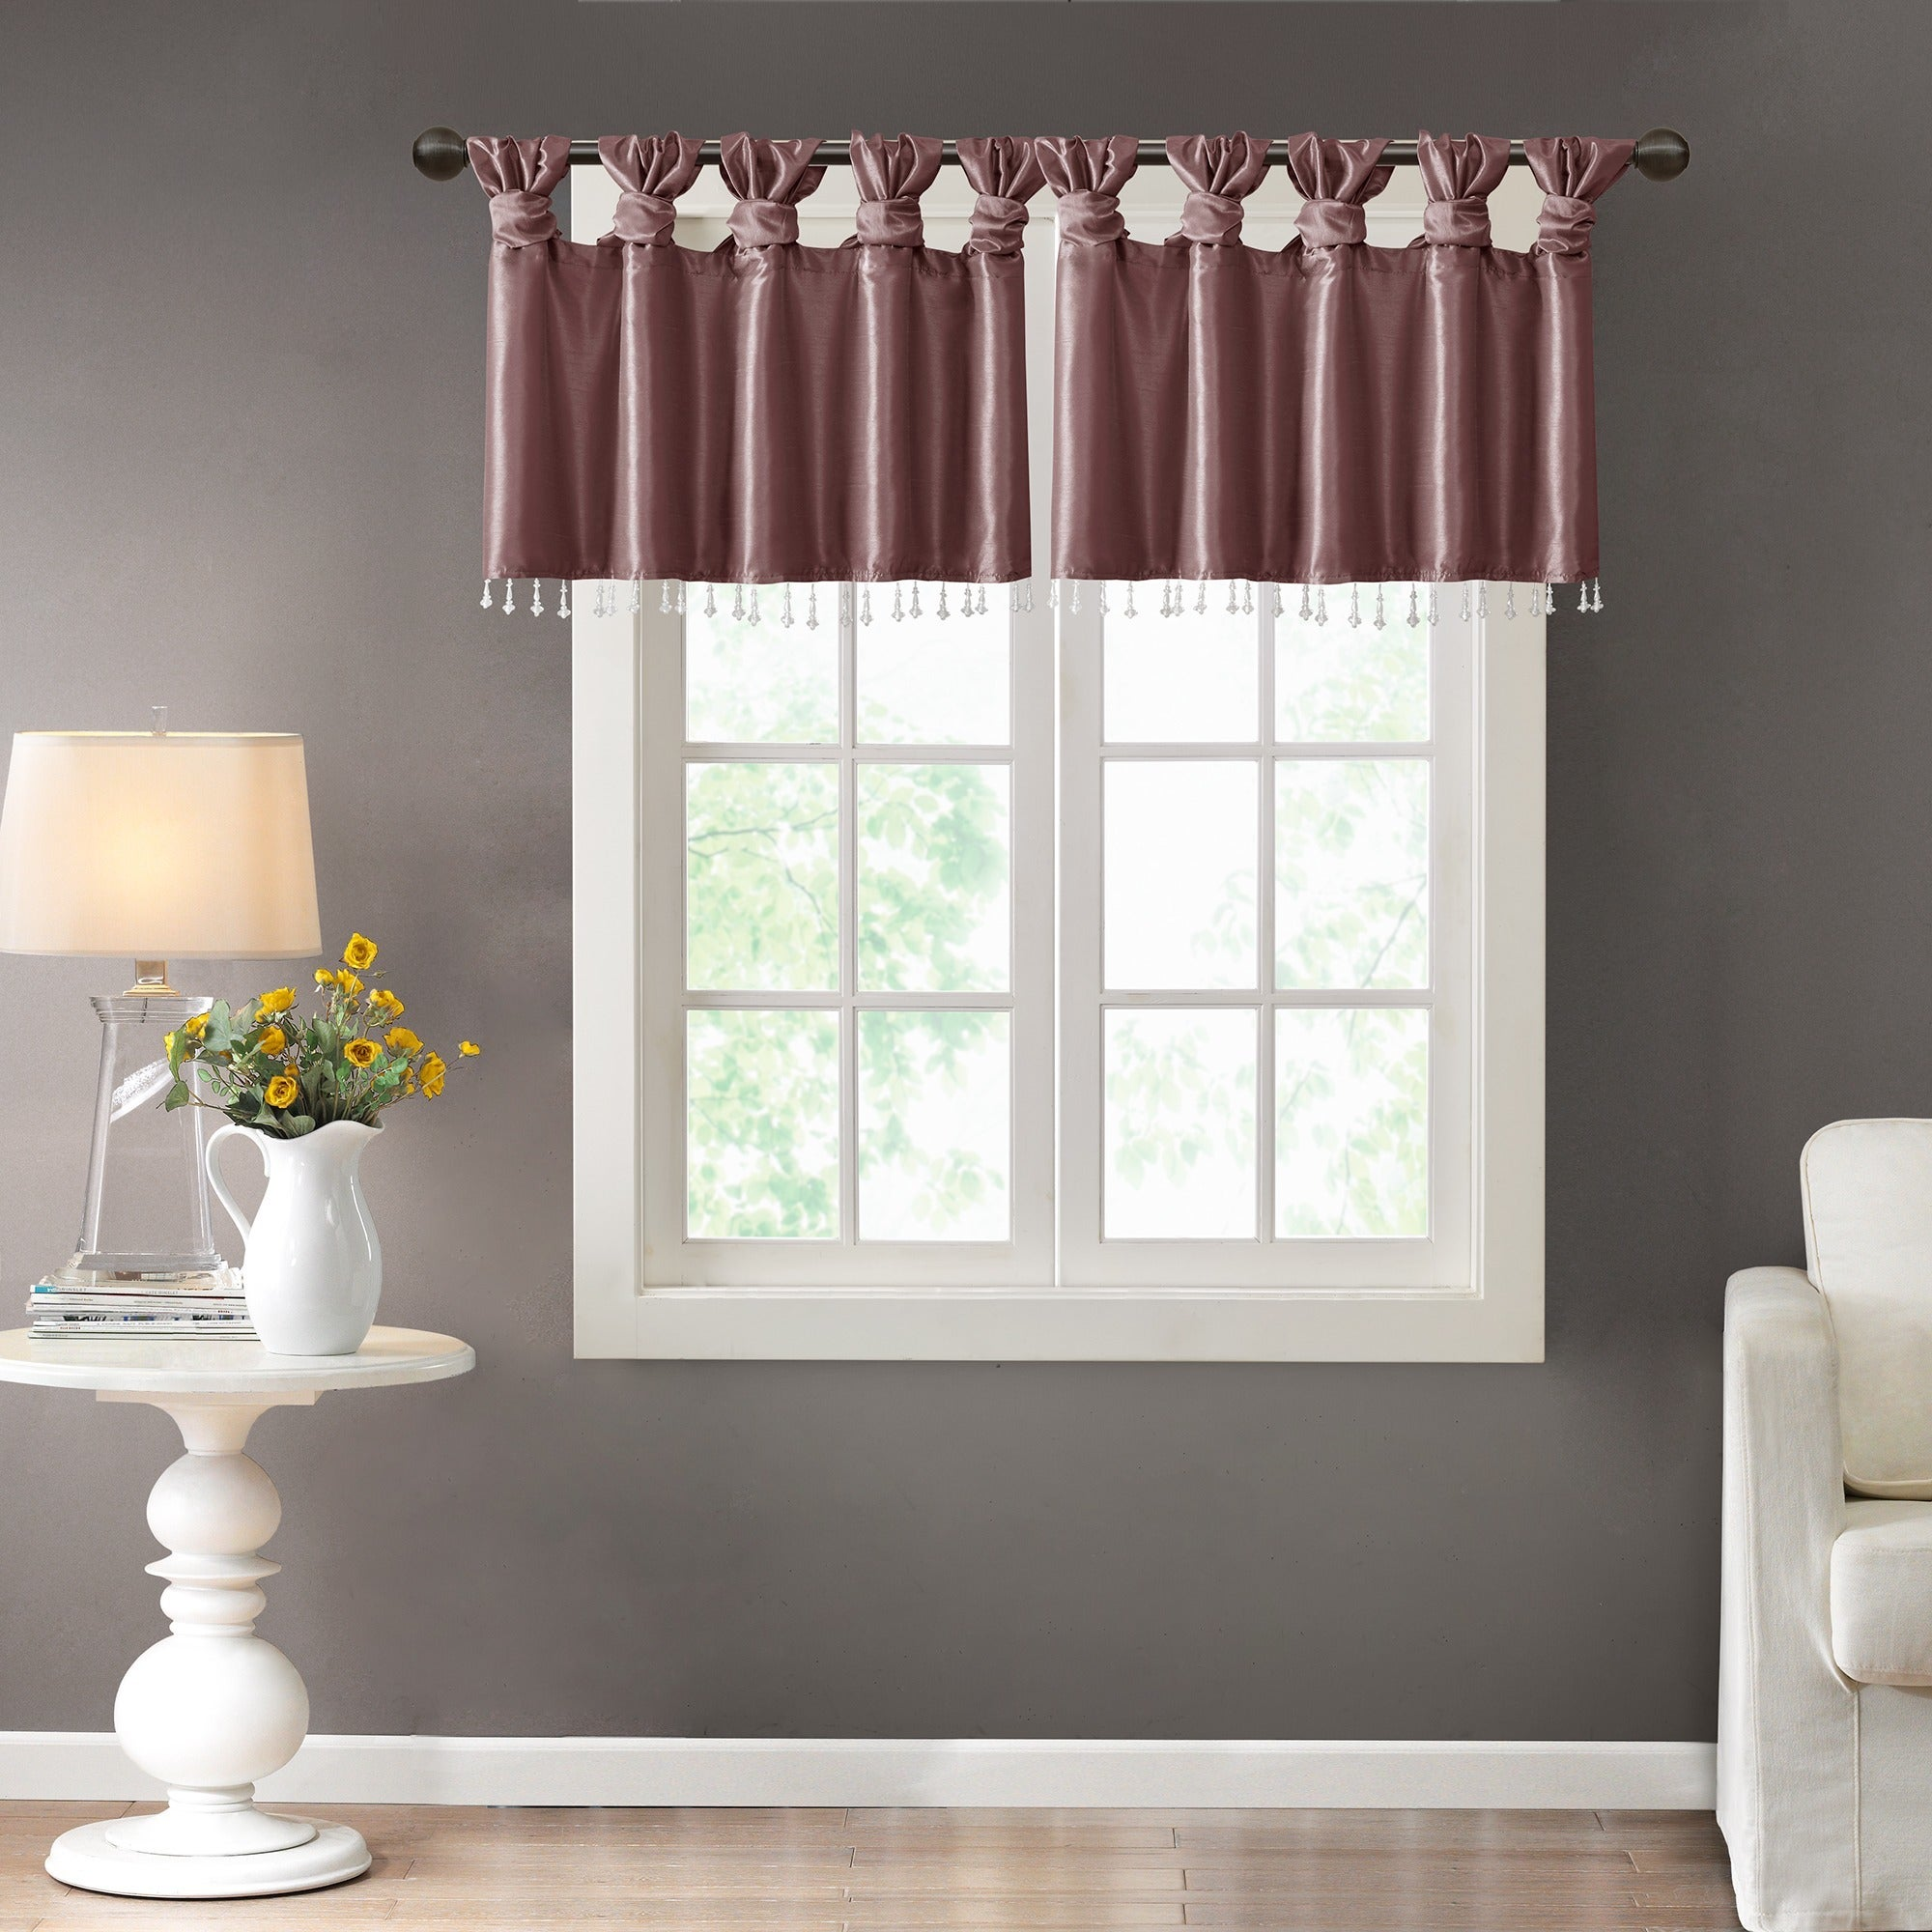 bedrooms for size valance ideas the purple valances white black swag a full mor curtain of bedroom